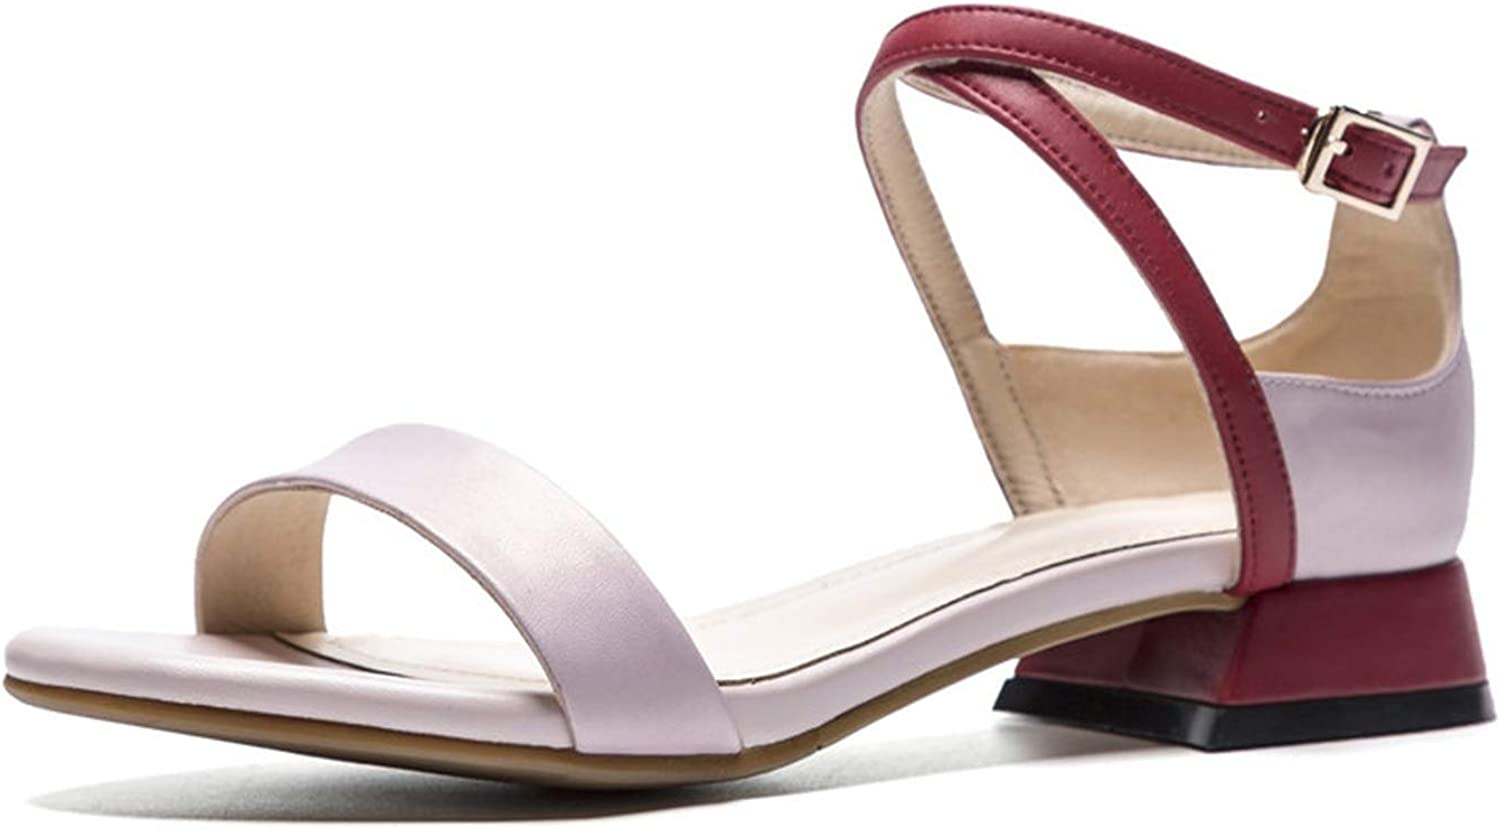 Girl21 Genuine Leather Women Sandals Mixed colors Square Heels Summer Buckle Casual shoes